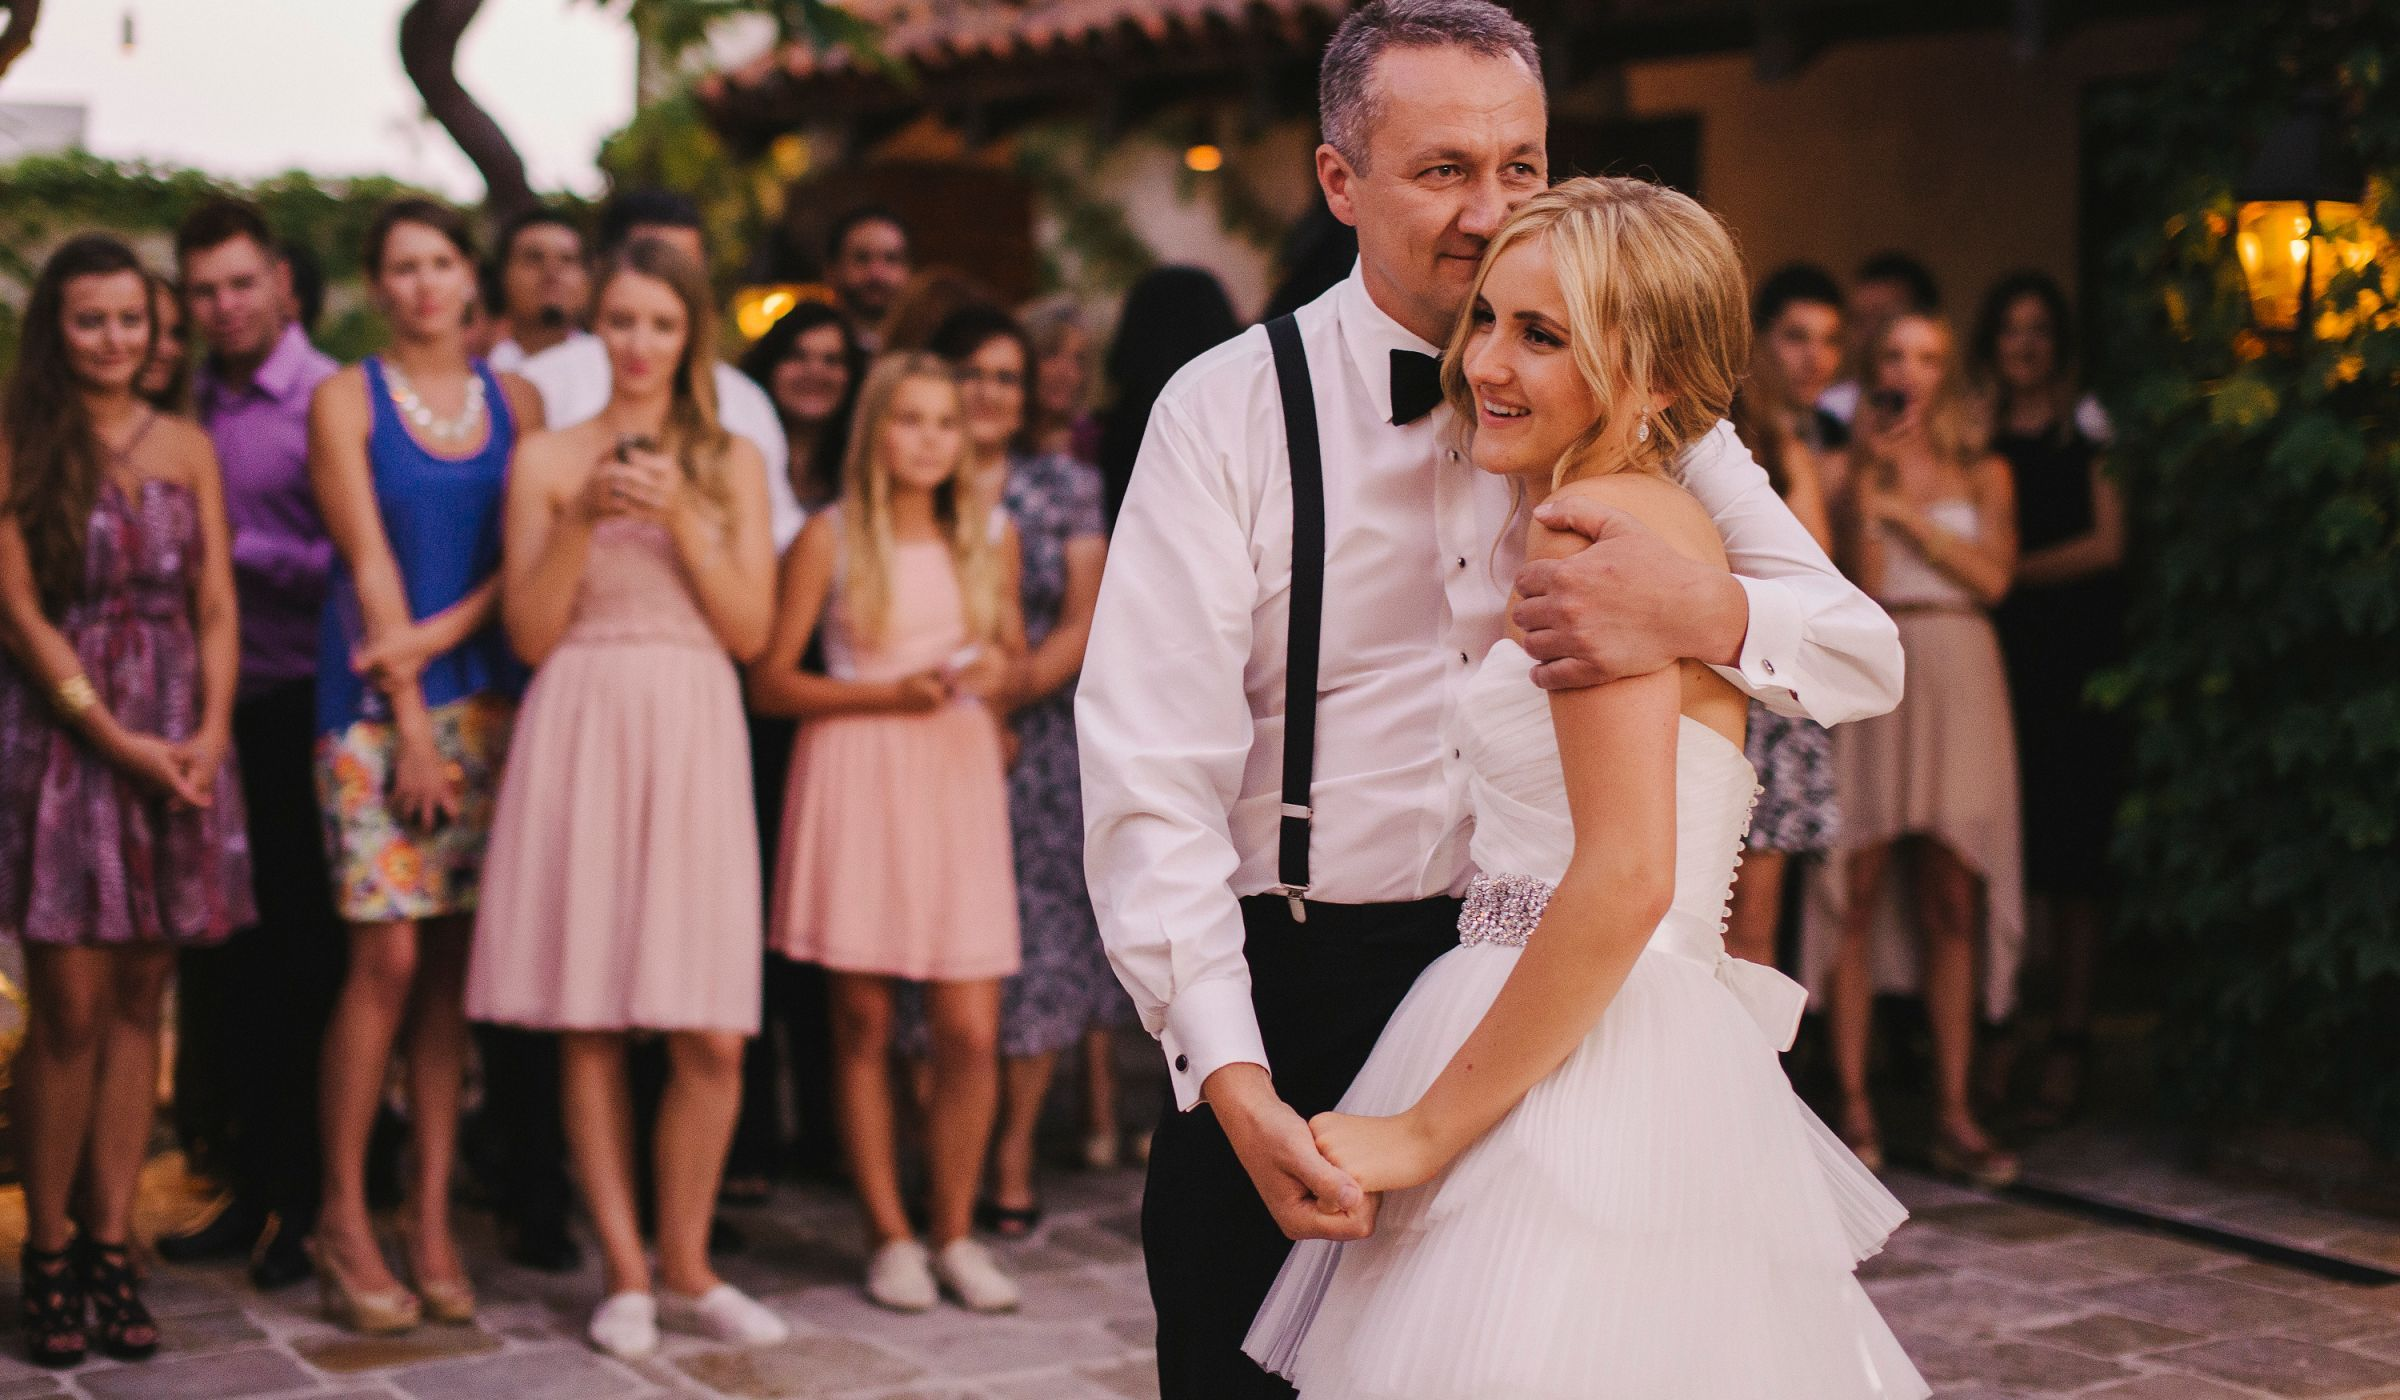 How To Write A Father Of The Bride Speech That Isnt Boring